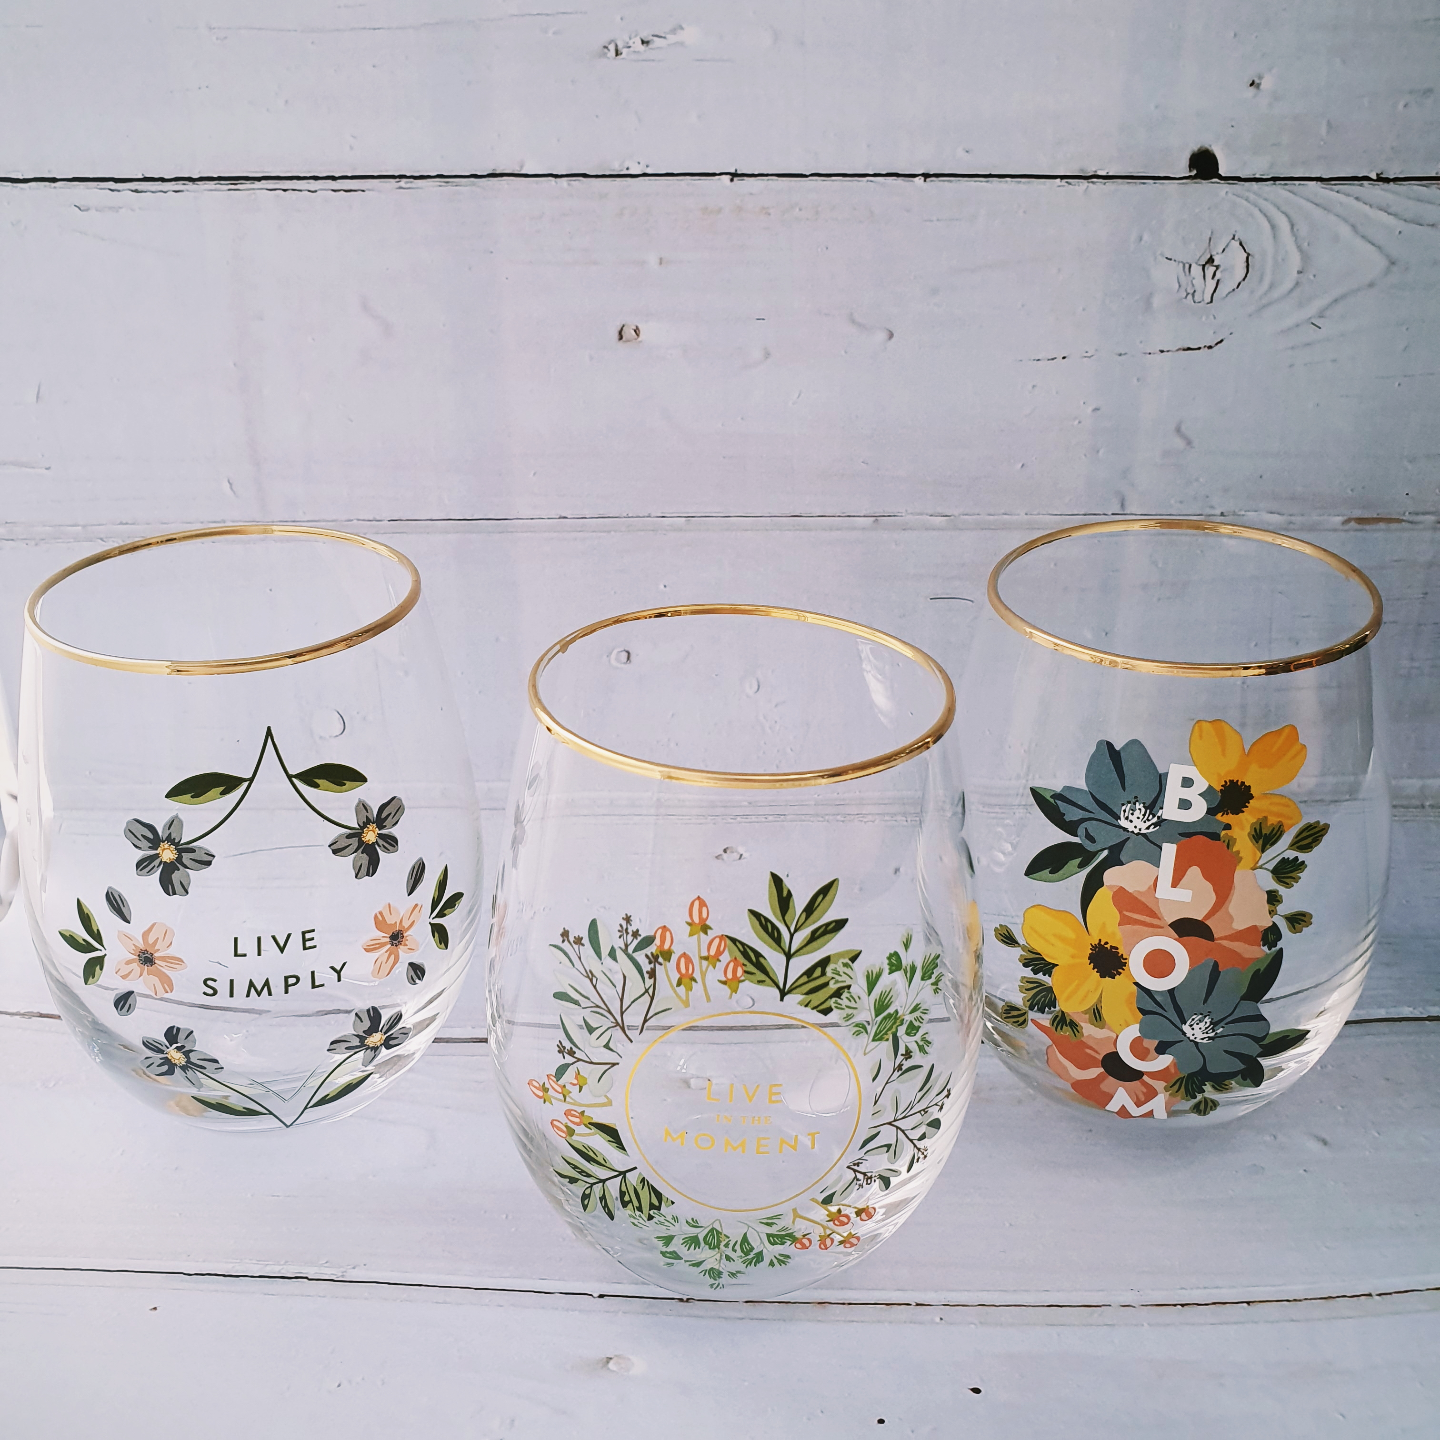 Three stemless wine glasses with gold rim. The wine glass on the left says Live Simply and is decorated by pink and blue flowers. The wine glass in the middle says Live in the moment and is decorated by a pink and blue floral wreath. The wine glass on the right says Bloom and is decorated with huge yellow, blue and red flowers.